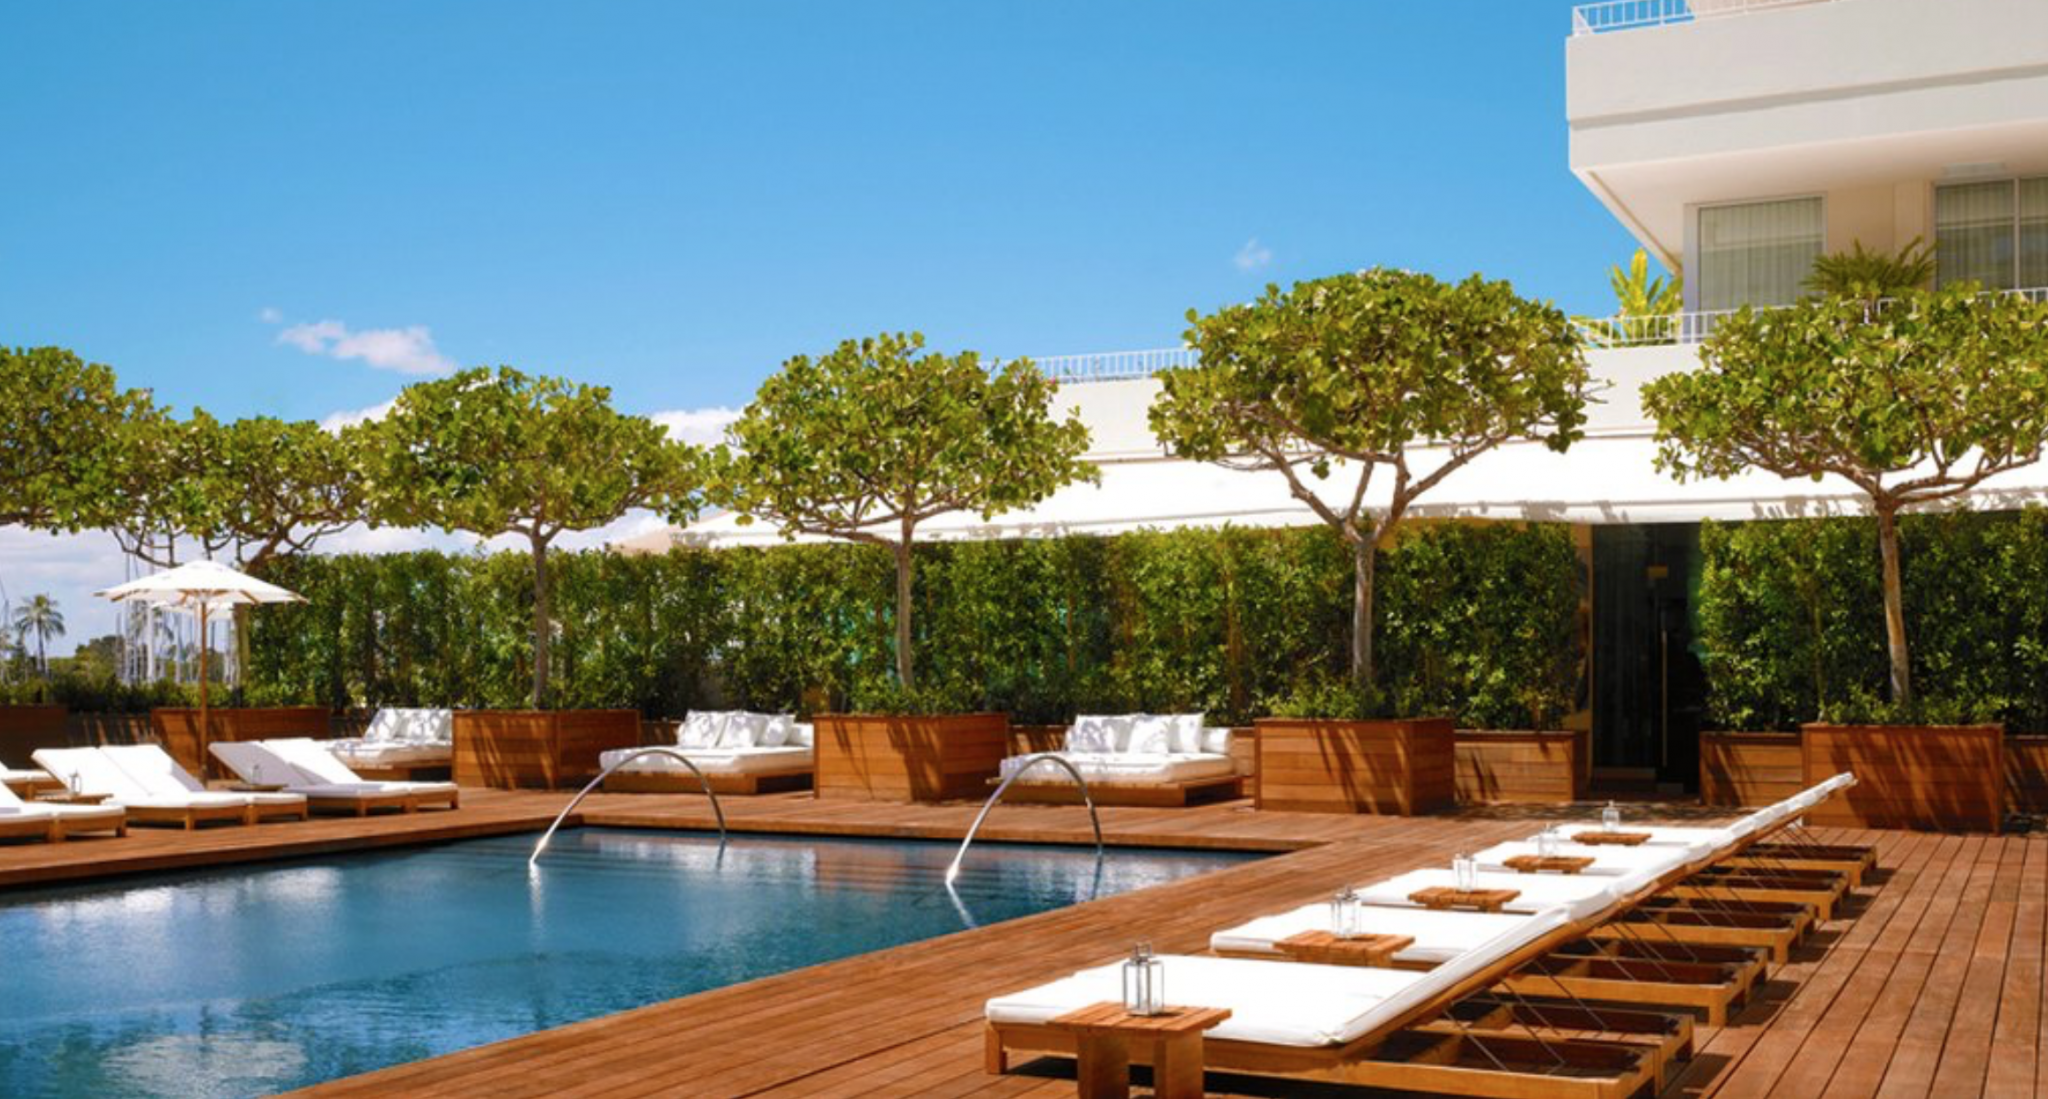 The modern hotel honolulu explored and reviewed best of for Pool design honolulu